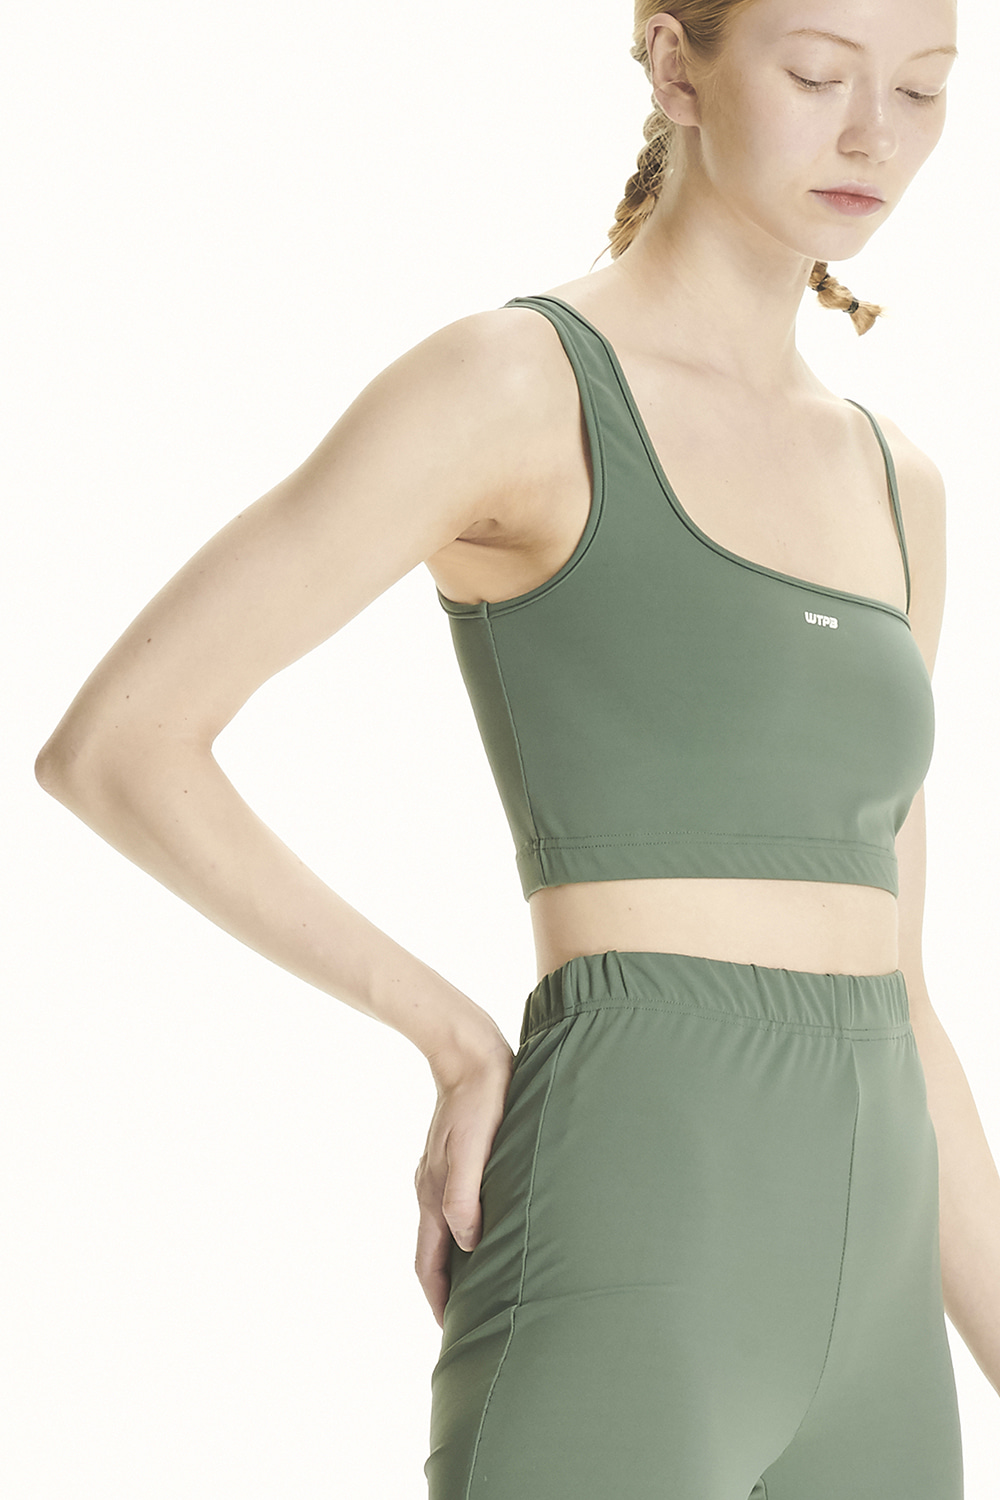 PS21 WTPB KHAKI BRA TOP